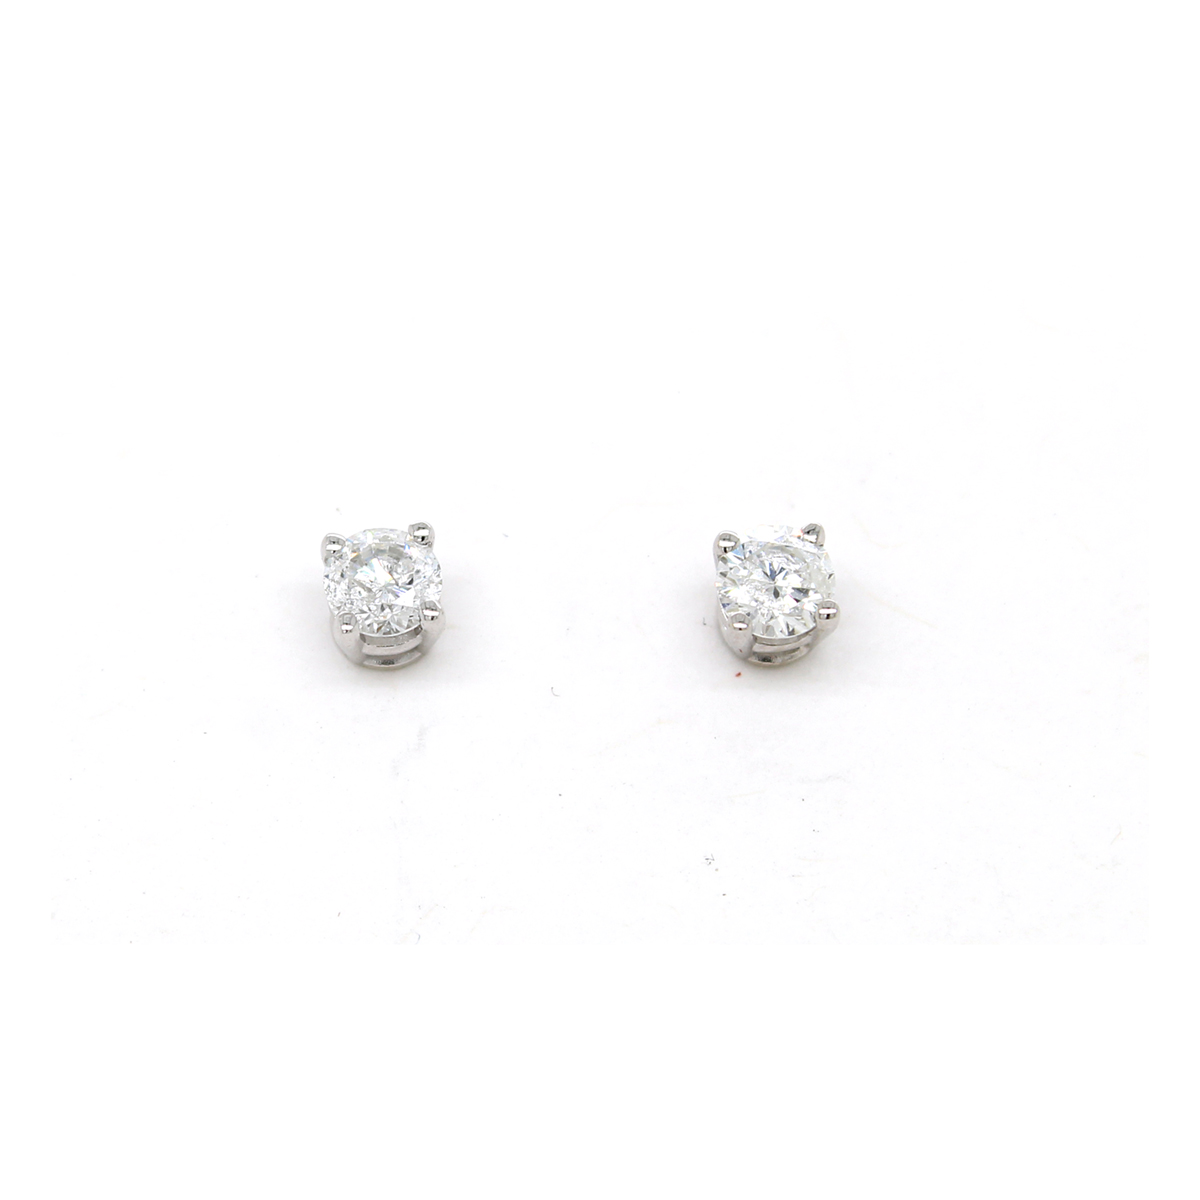 Vintage 14 Karat White Gold Diamond Solitaire Earrings